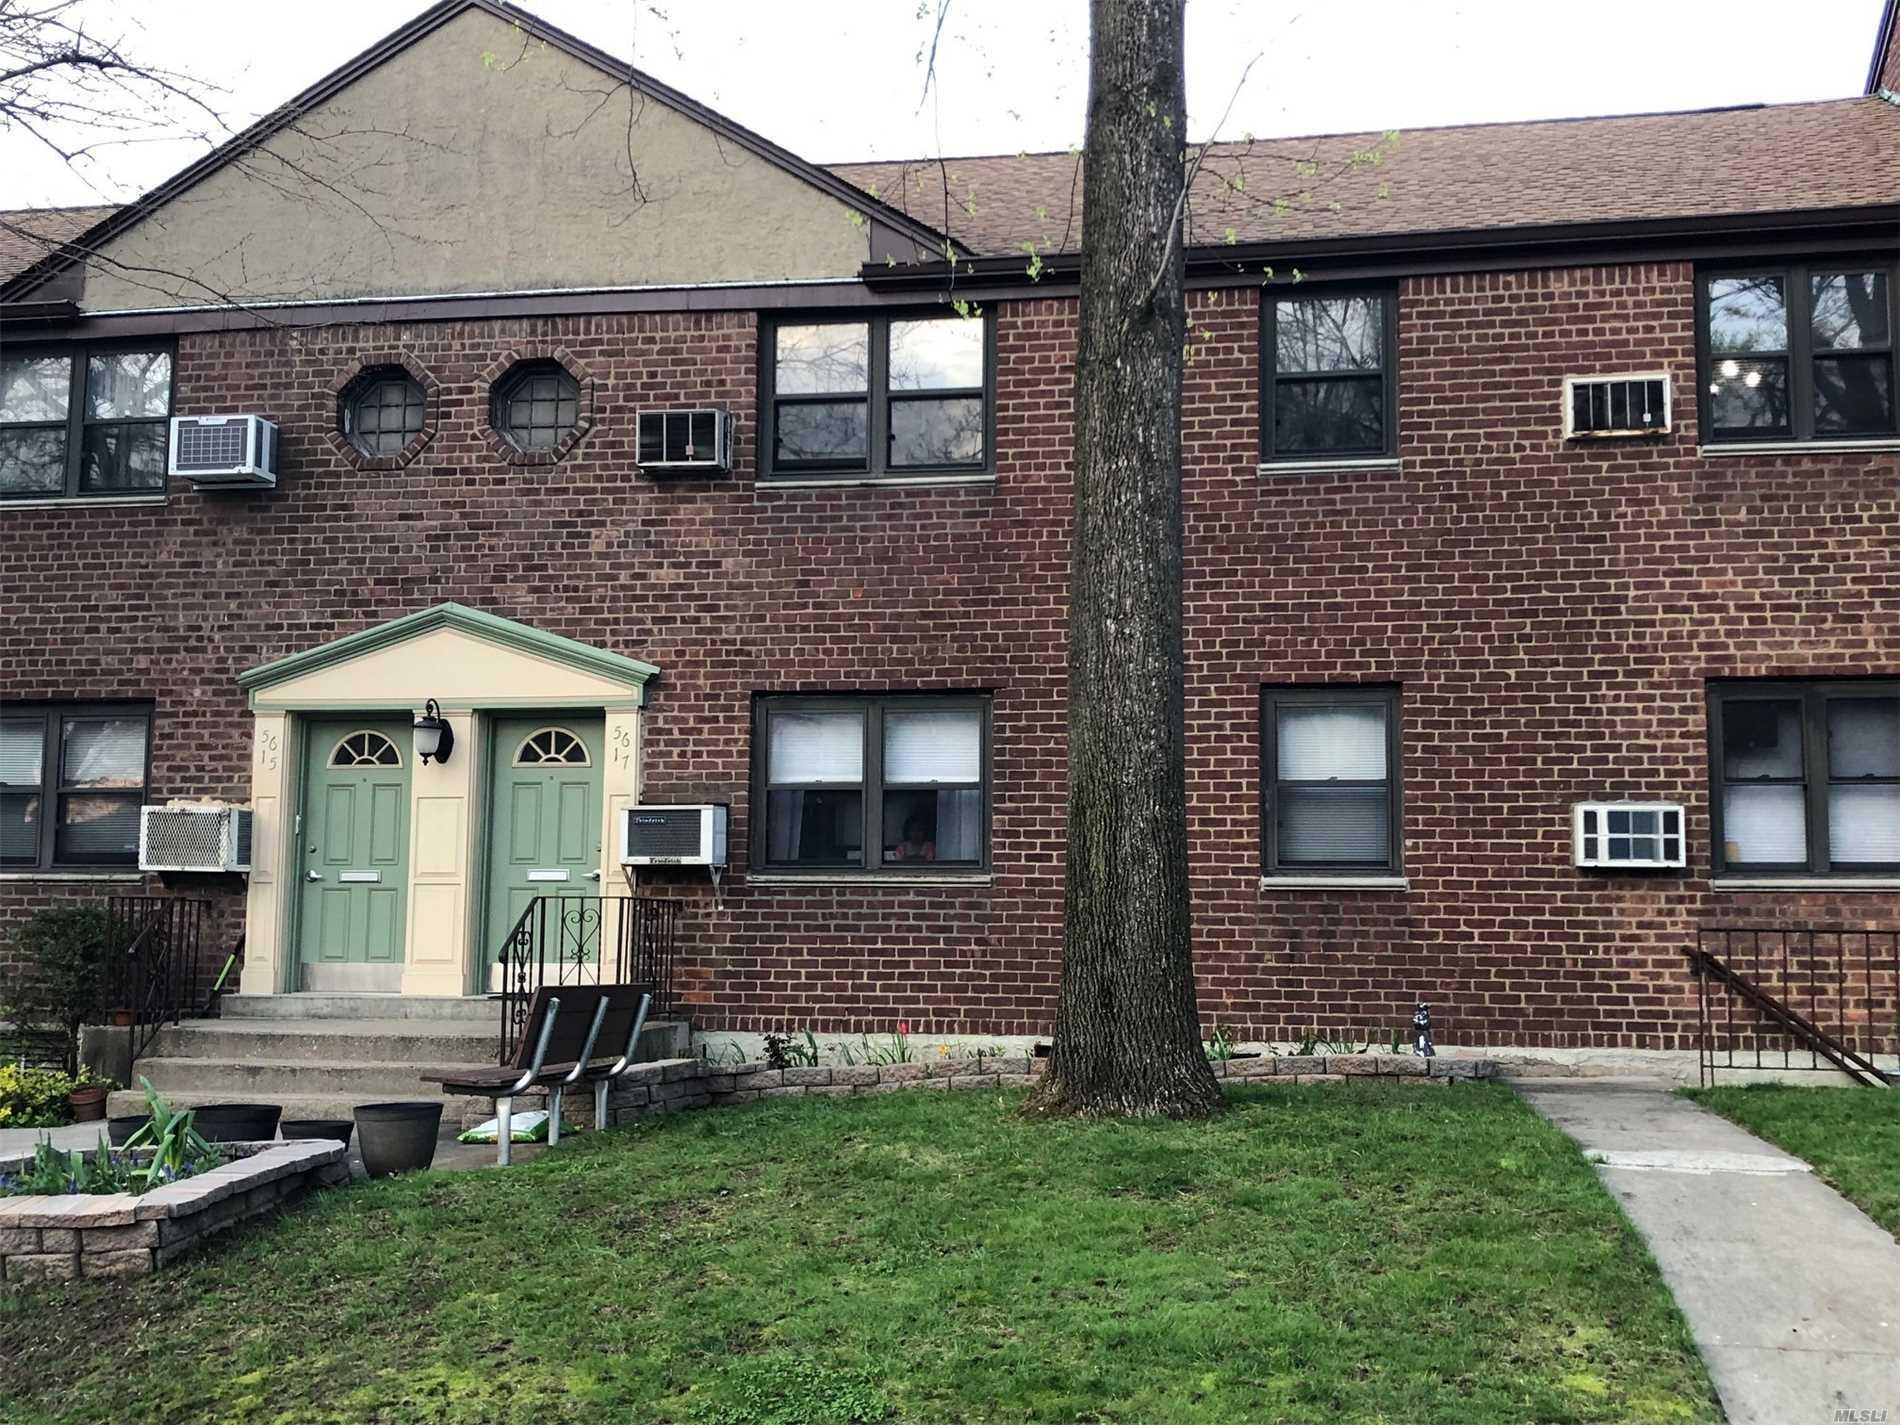 TRUE 3 BEDROOM! Updated ground floor unit in Beech Hills. Property includes beautiful hardwood floors, an updated kitchen and bath, dining room and three generously sized bedrooms with large closets. Located in award winning District 26. Maintenance includes water, gas, heat, electric & private sanitation. Buyer must meet coop requirements.